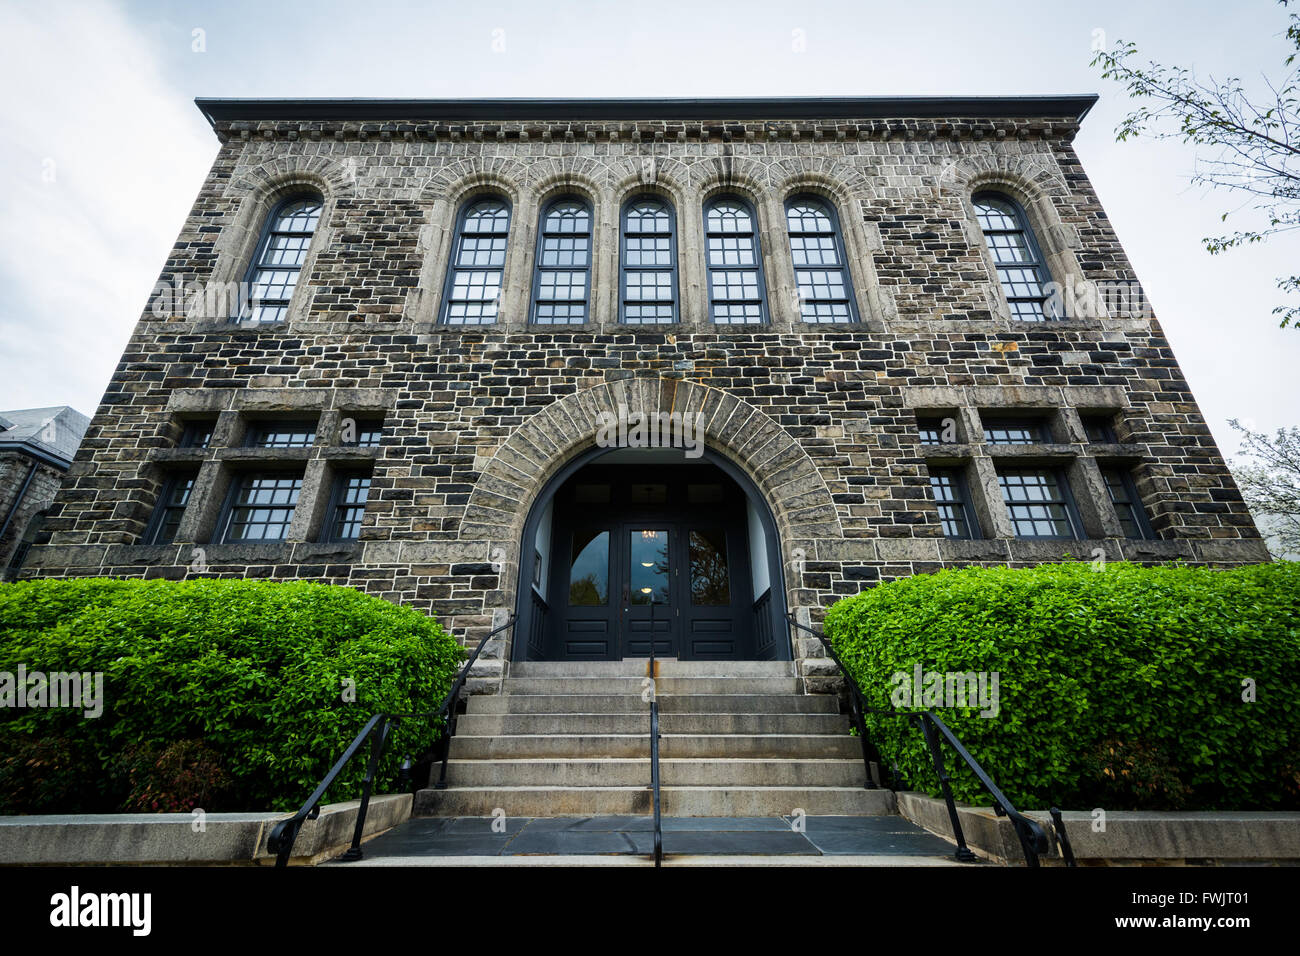 Old stone building in Bolton Hill, Baltimore, Maryland. - Stock Image